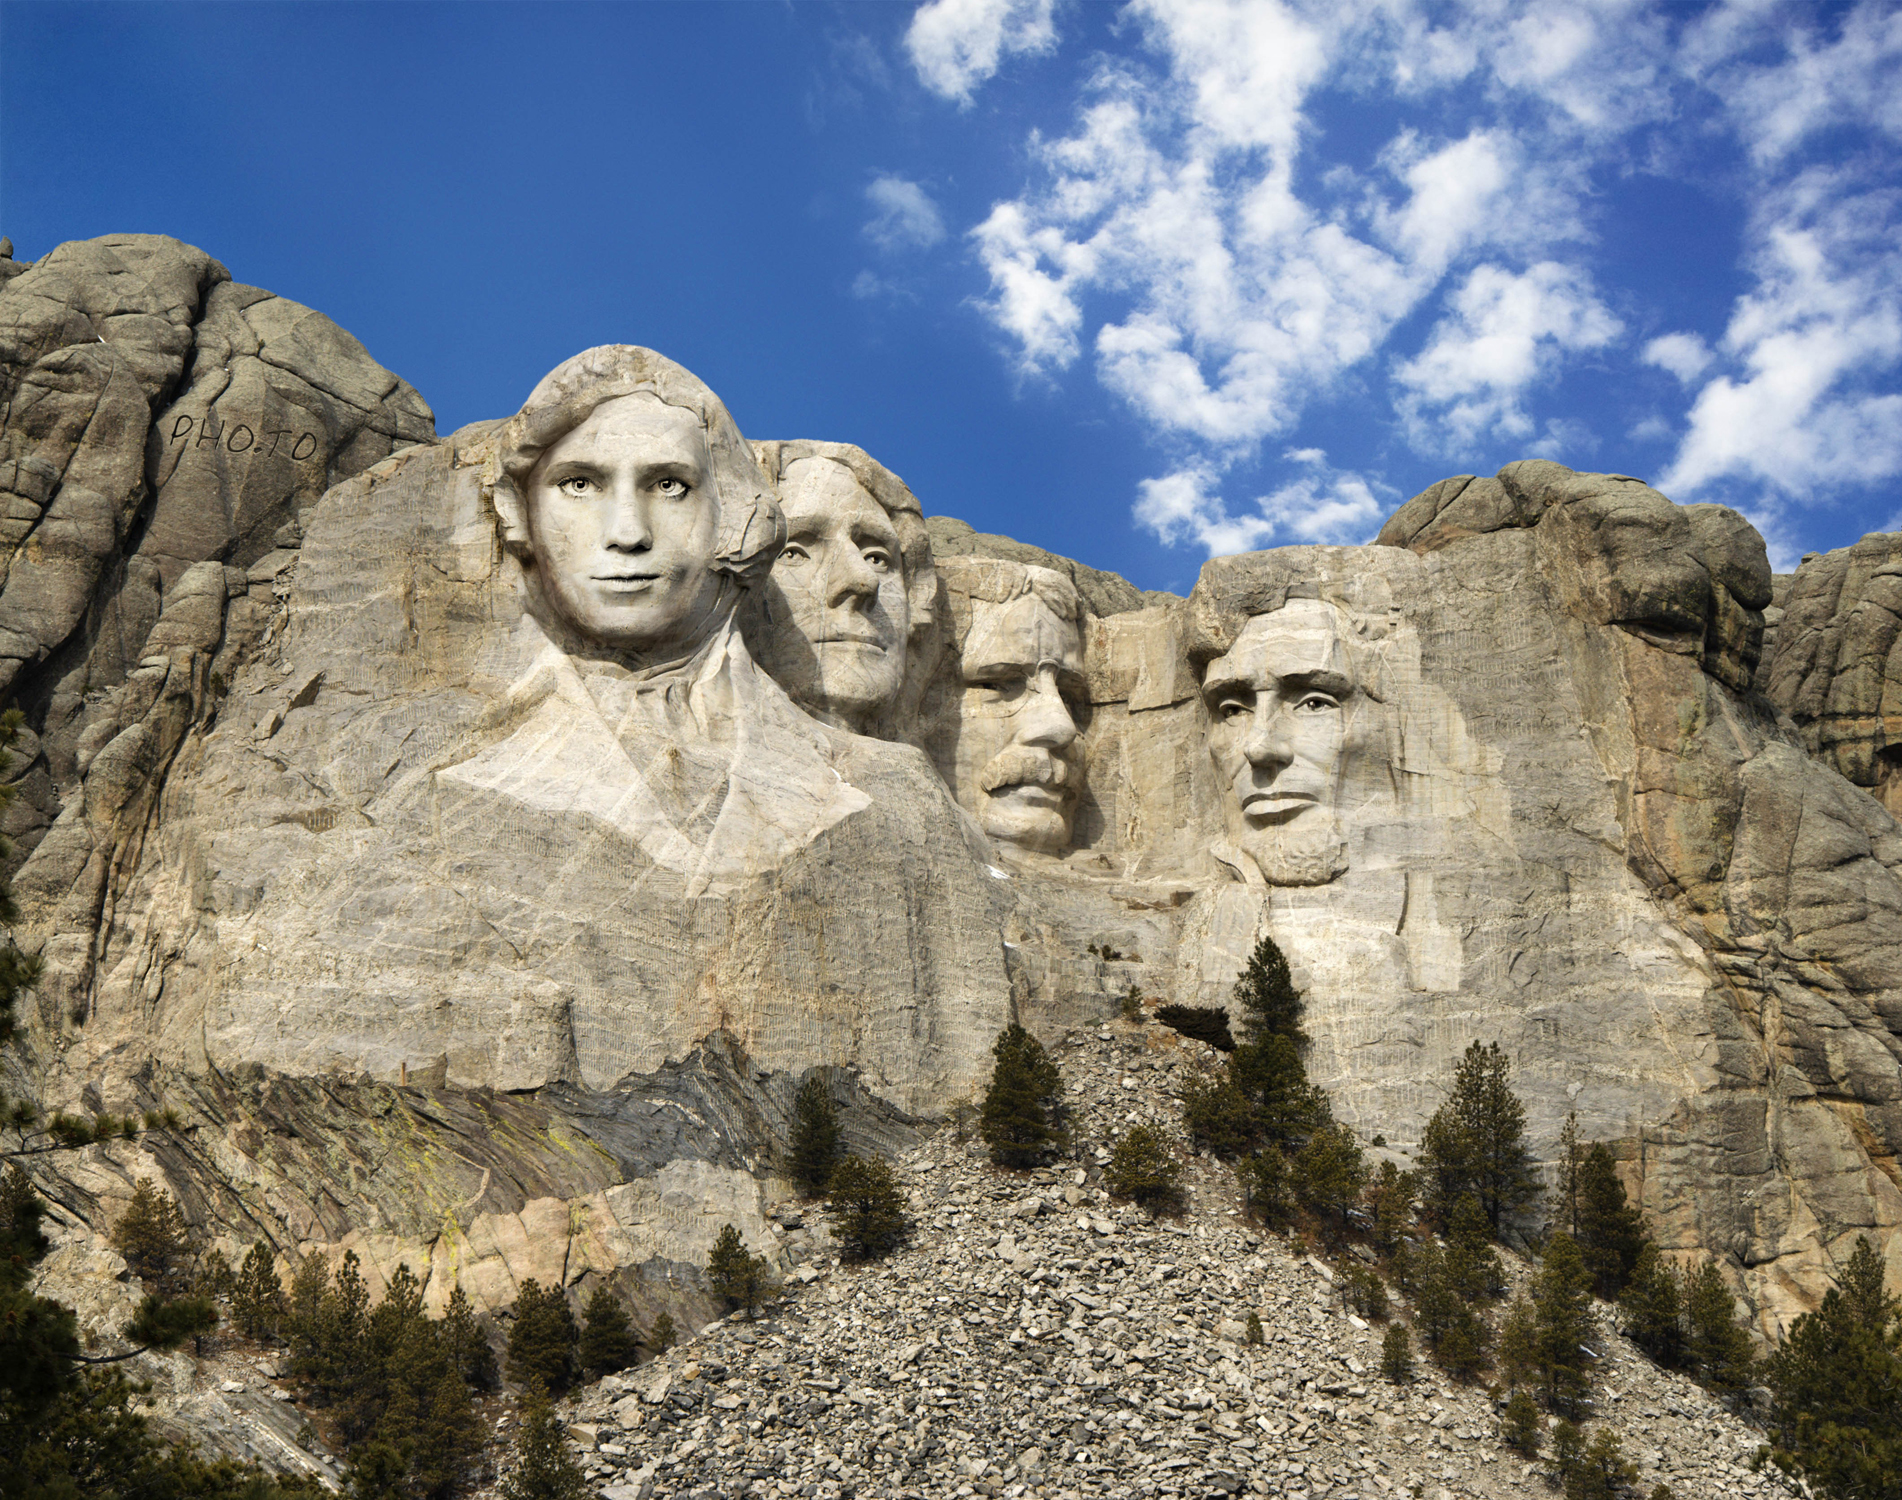 Face of a man is carved in stone. Created on Funny.Pho.to online